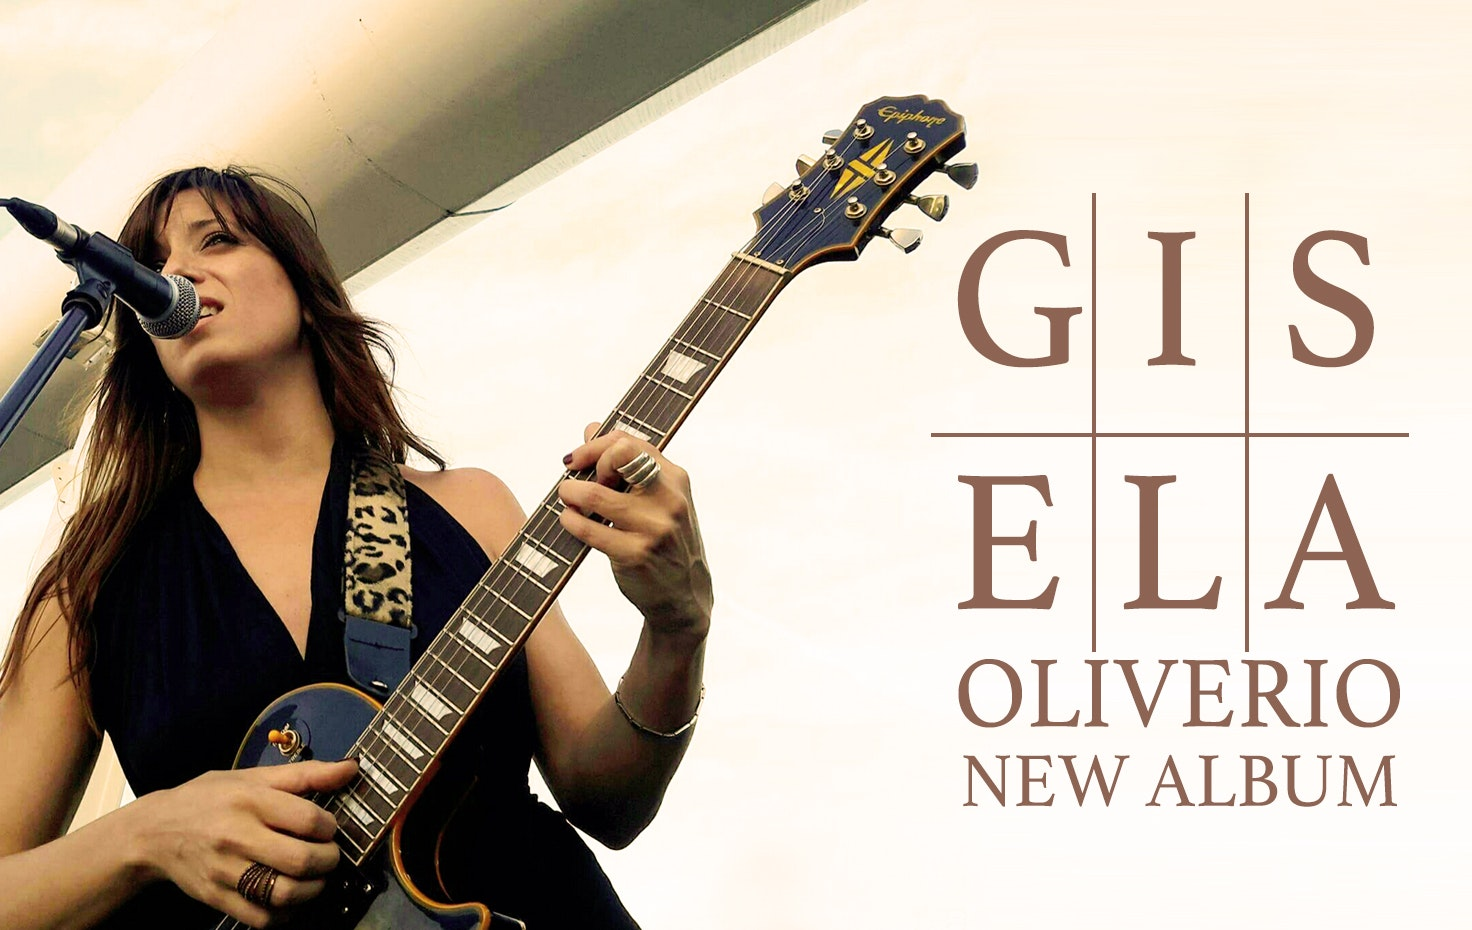 Gisela Oliverio New Album